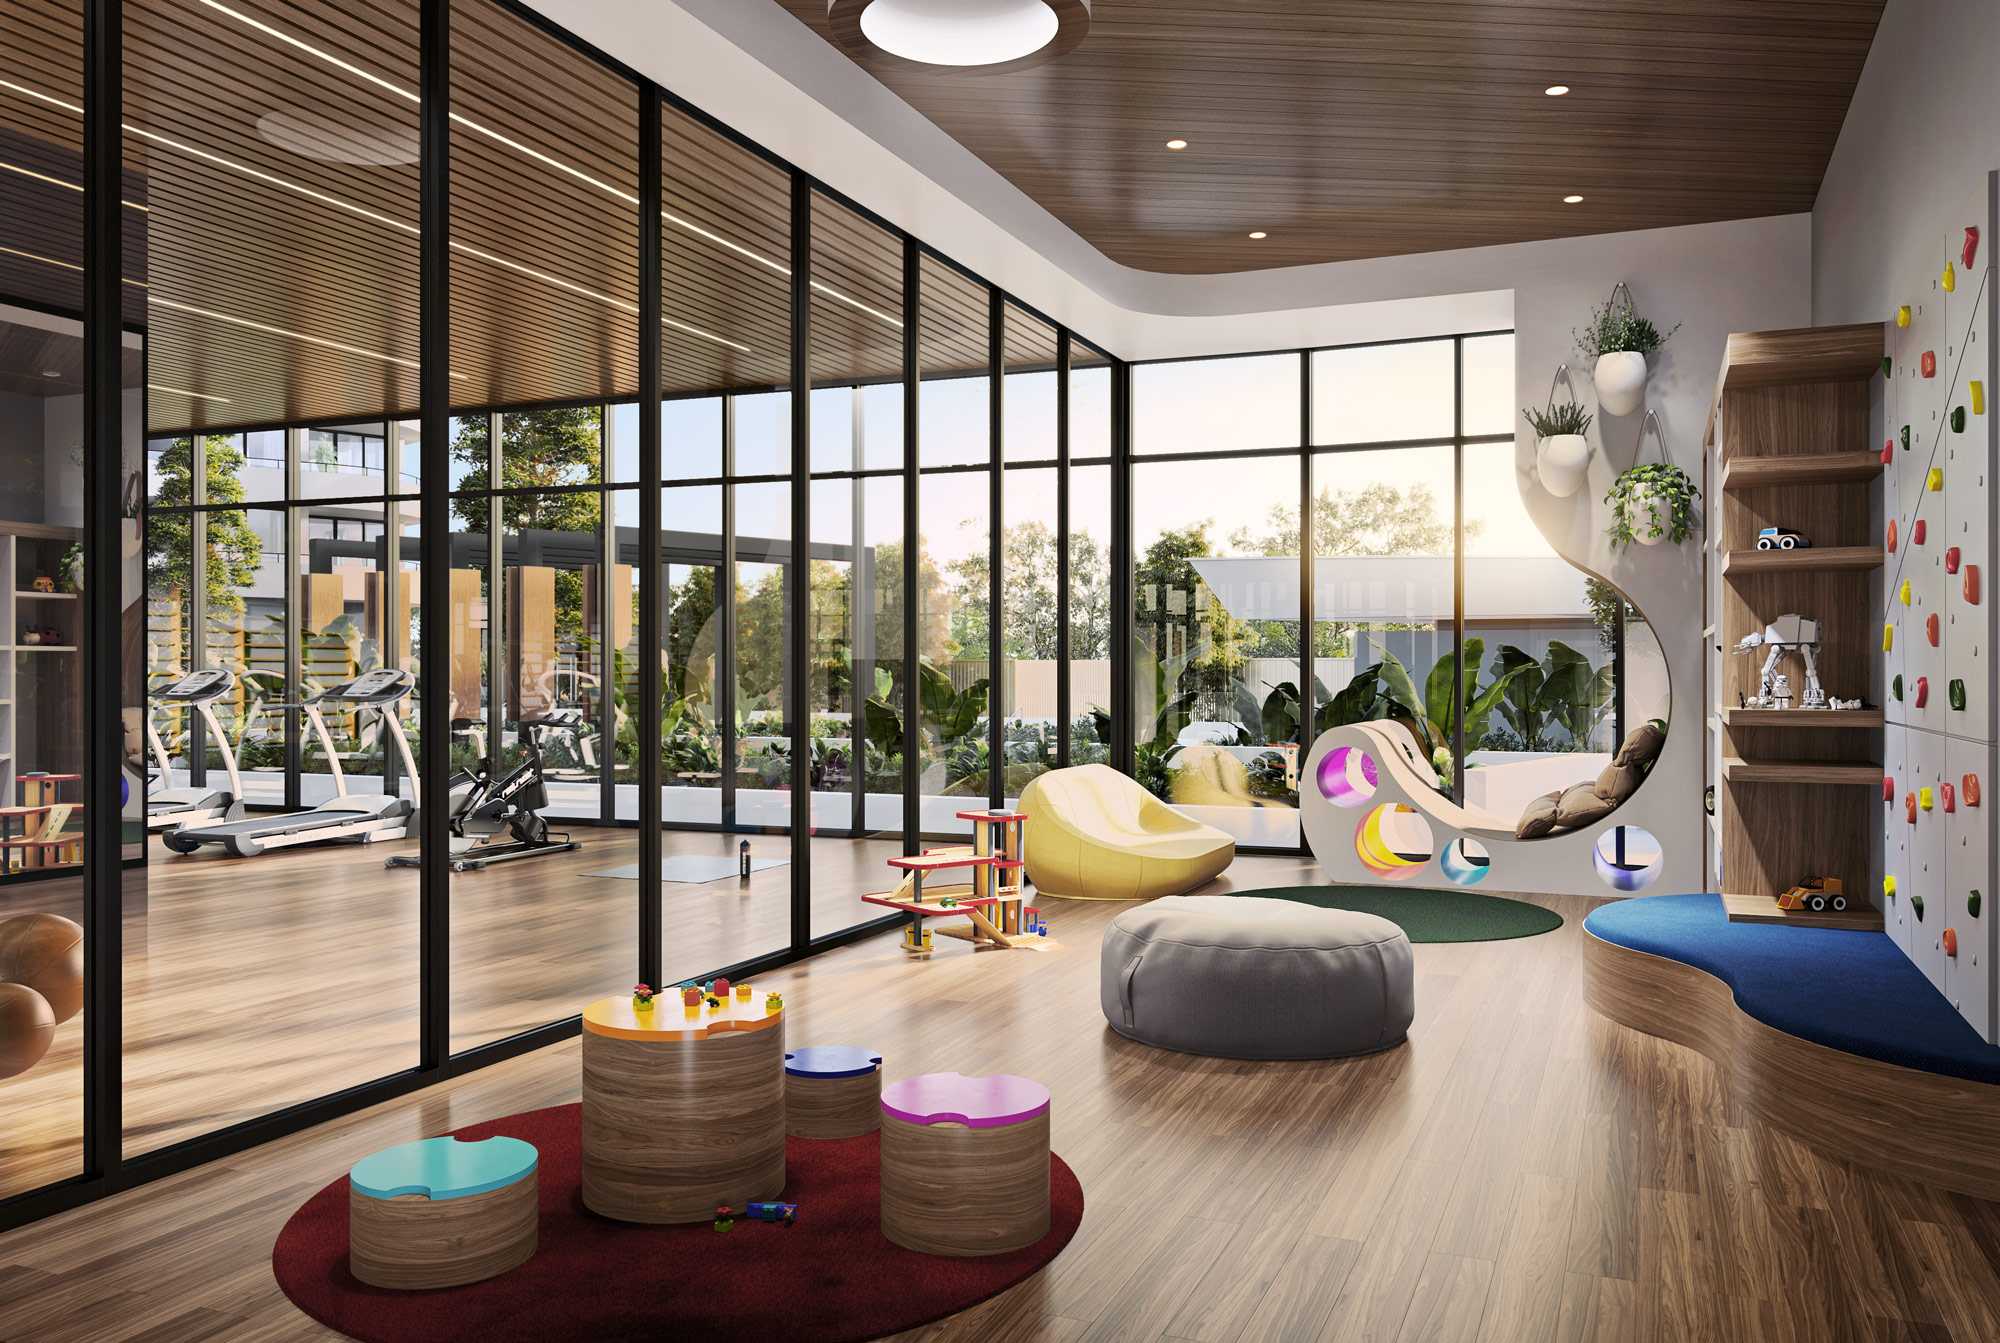 WEB_gym_with_kids_room_1_grant_ave_3d_re